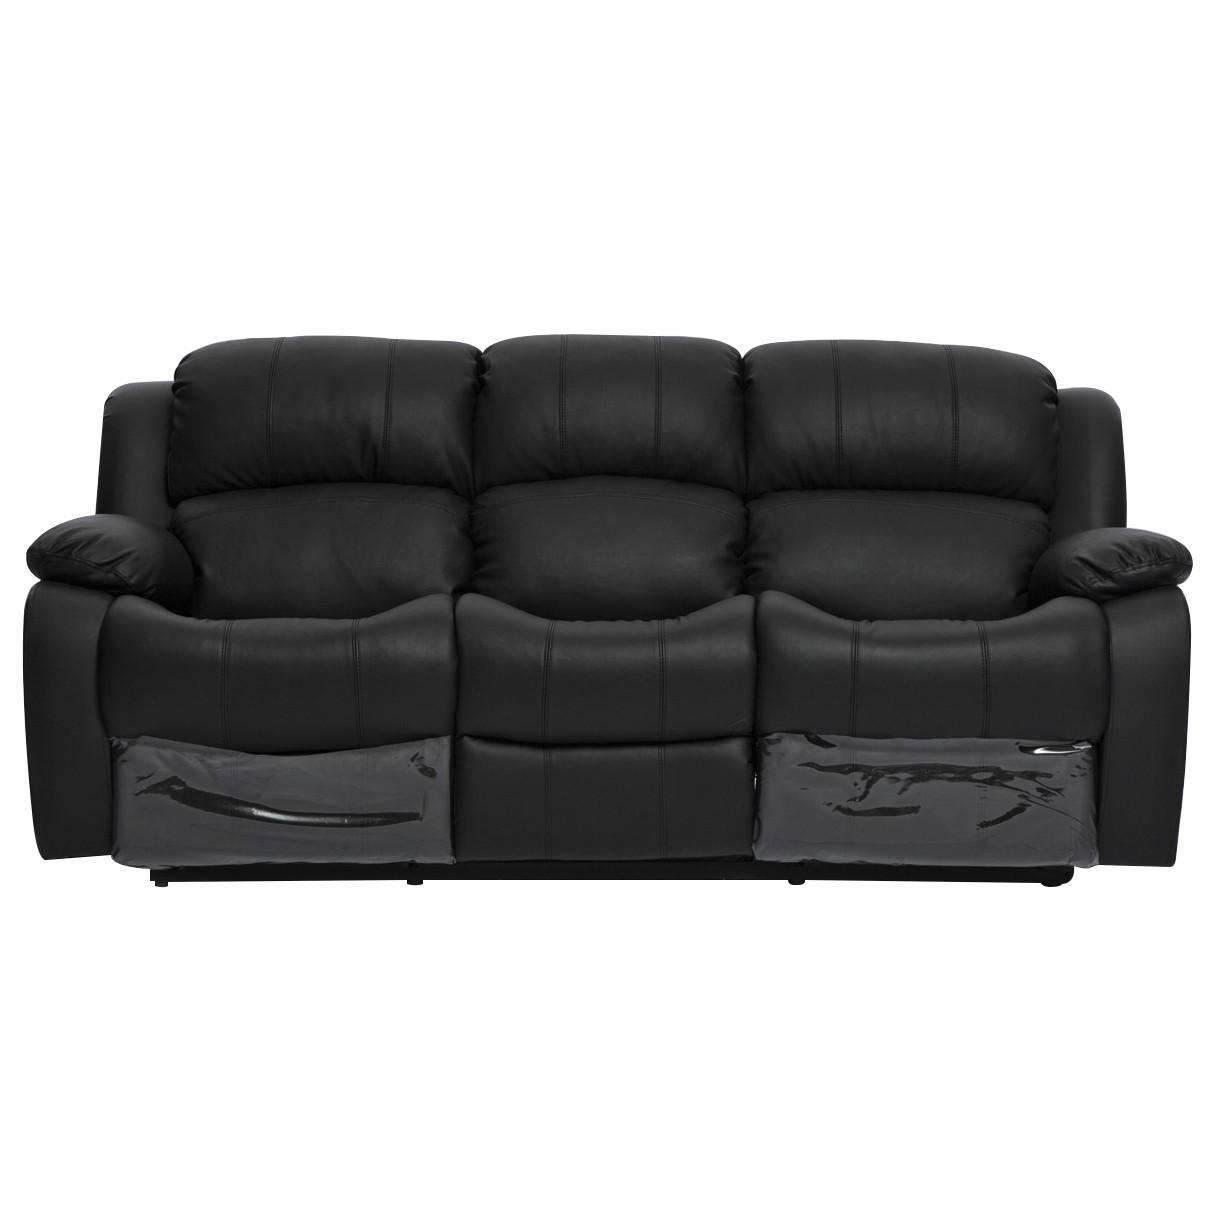 Kacey 3 Seater Chair Recliner Couch Lounge ...  sc 1 st  MysuiteHome & Kacey 3 Seater Chair Recliner Couch Lounge Suite Sofa - Home ... islam-shia.org